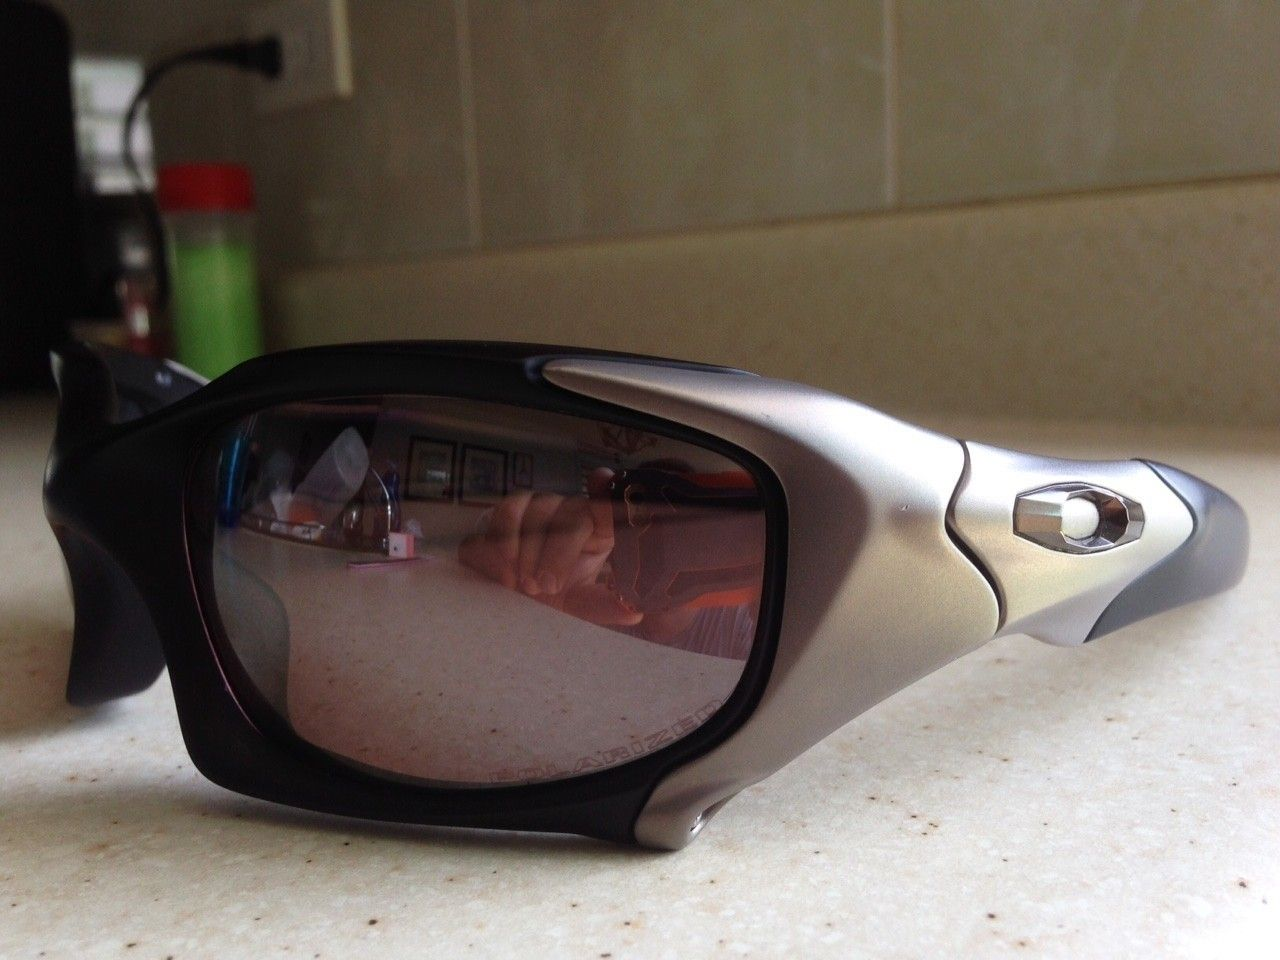 OAKLEY ELITE PIT BOSS 1 MATTE BLACK / TITANIUM / POL BLACK IRIDIUM SUNGLASSES OR TRADE ROMEO 1 - IMG_7235.JPG